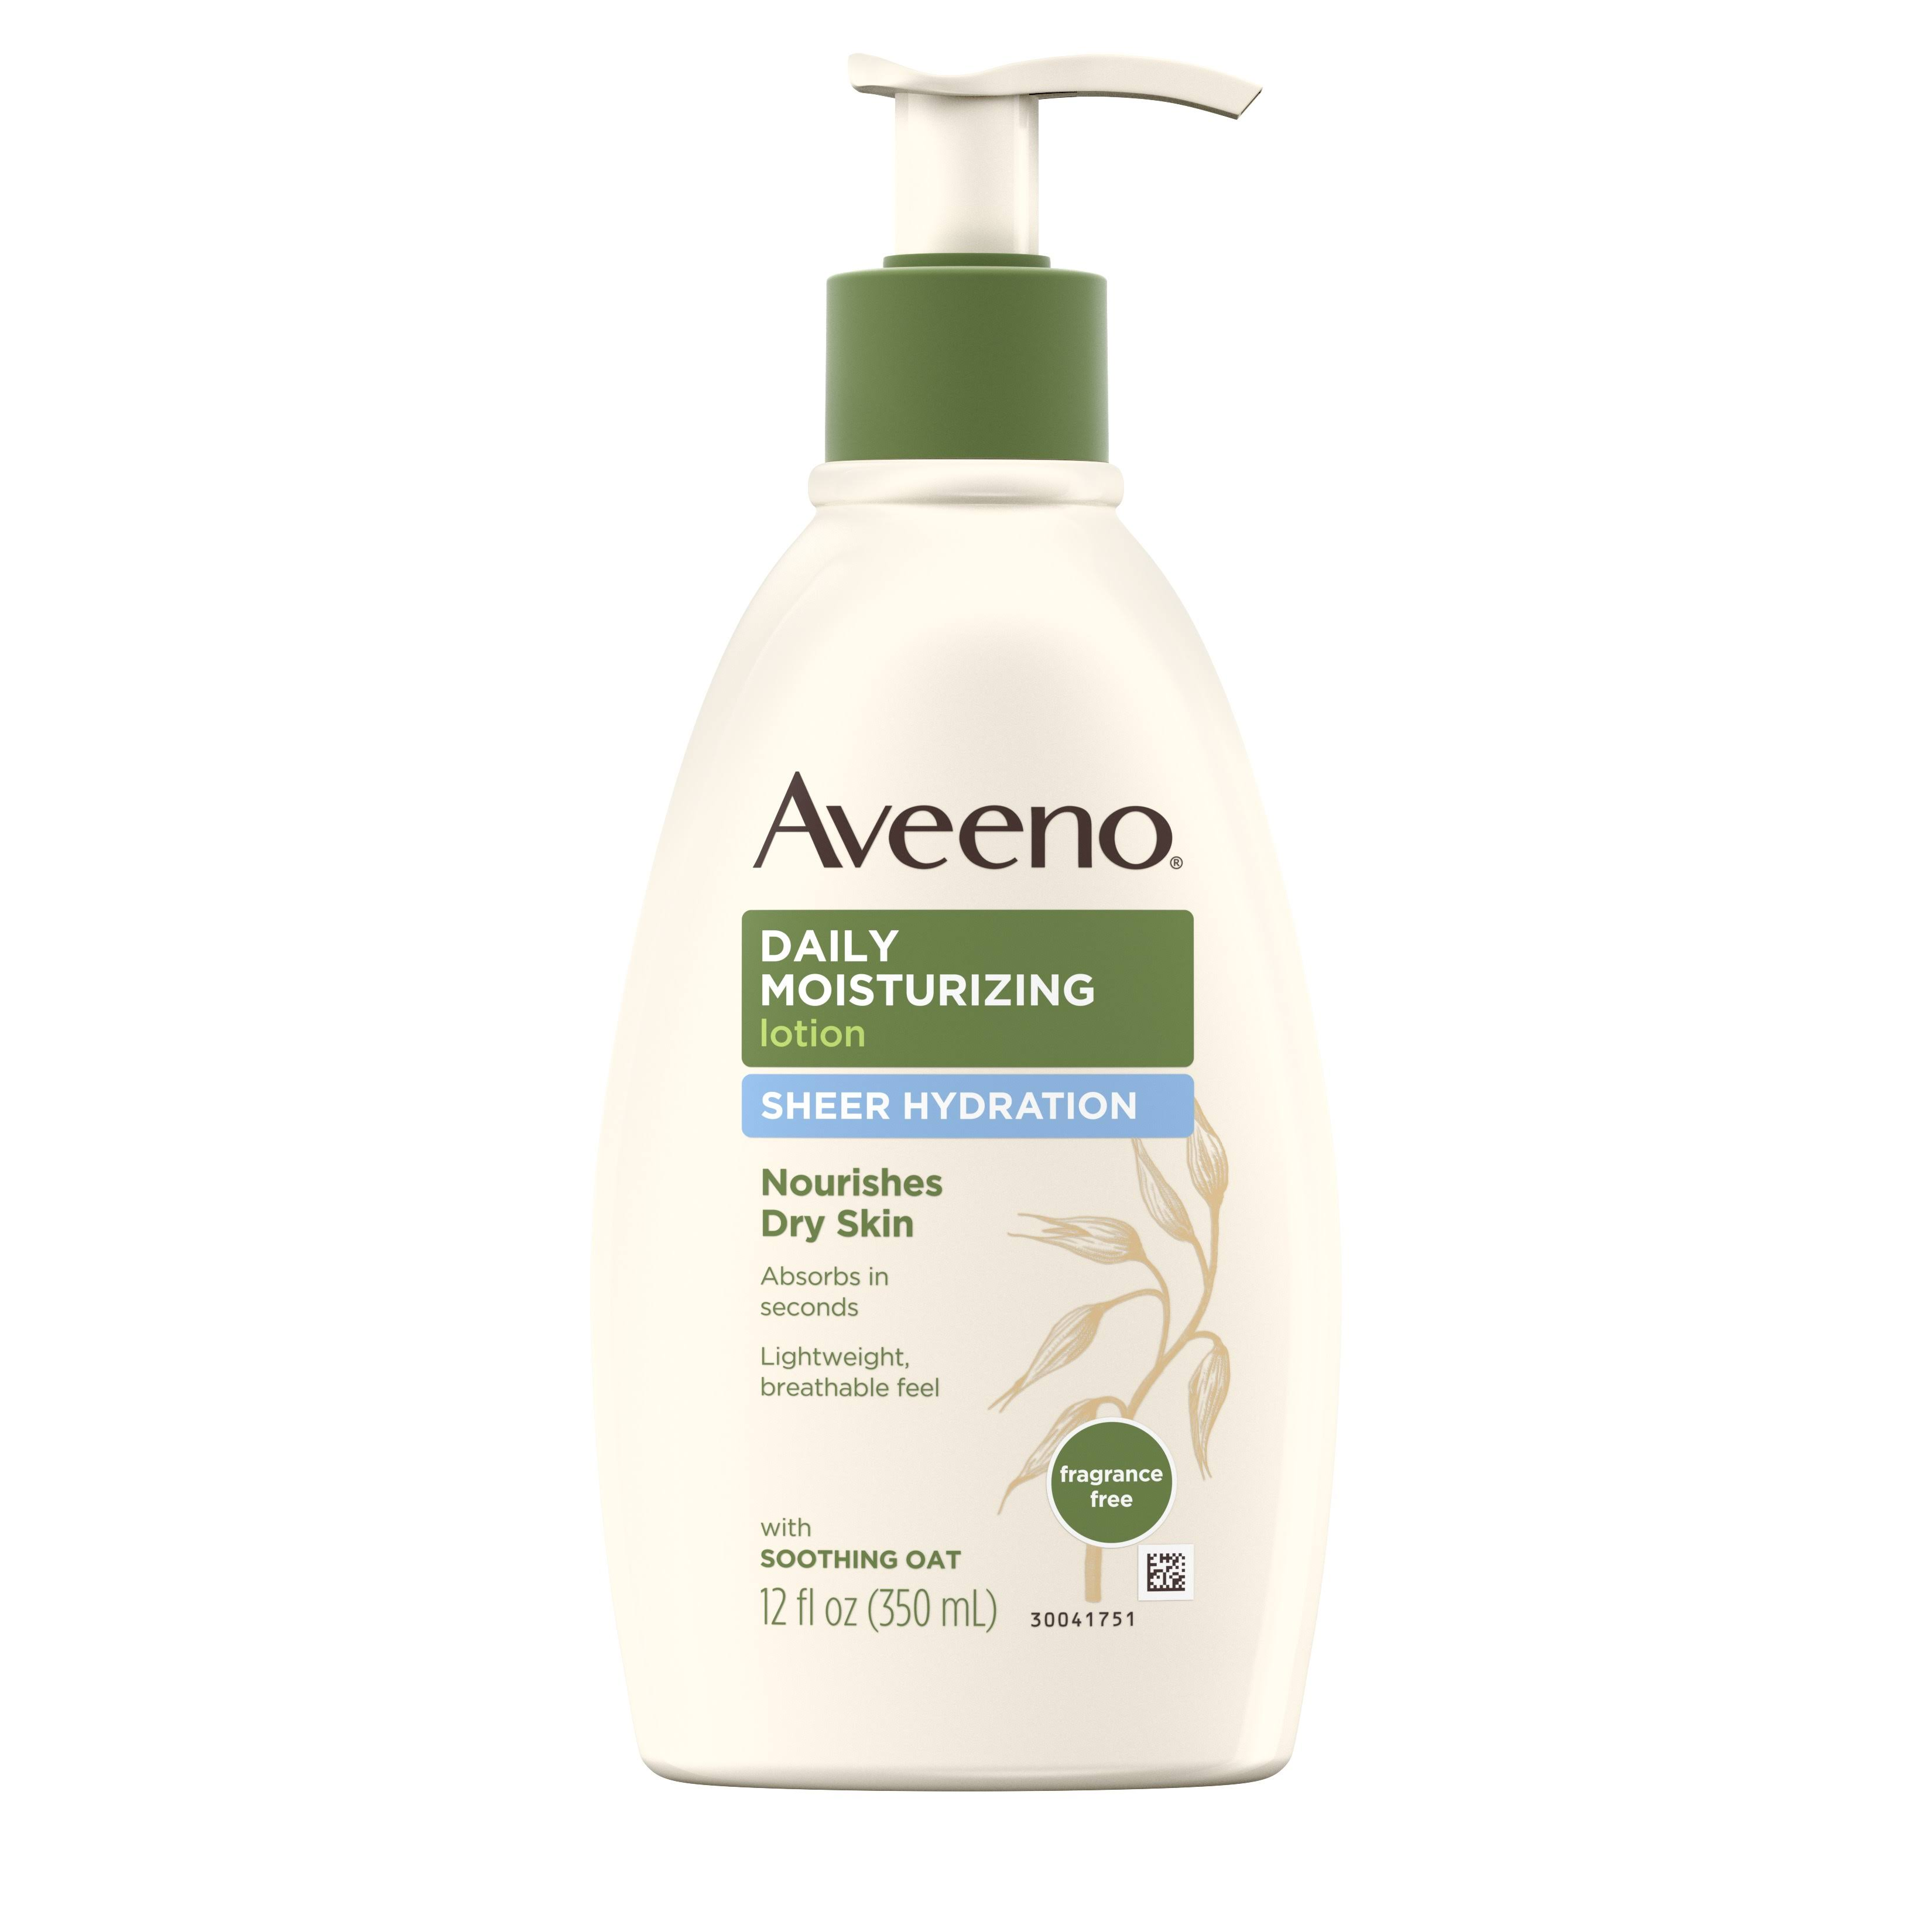 Aveeno Sheer Hydration Daily Moisturizing Lotion - 12oz